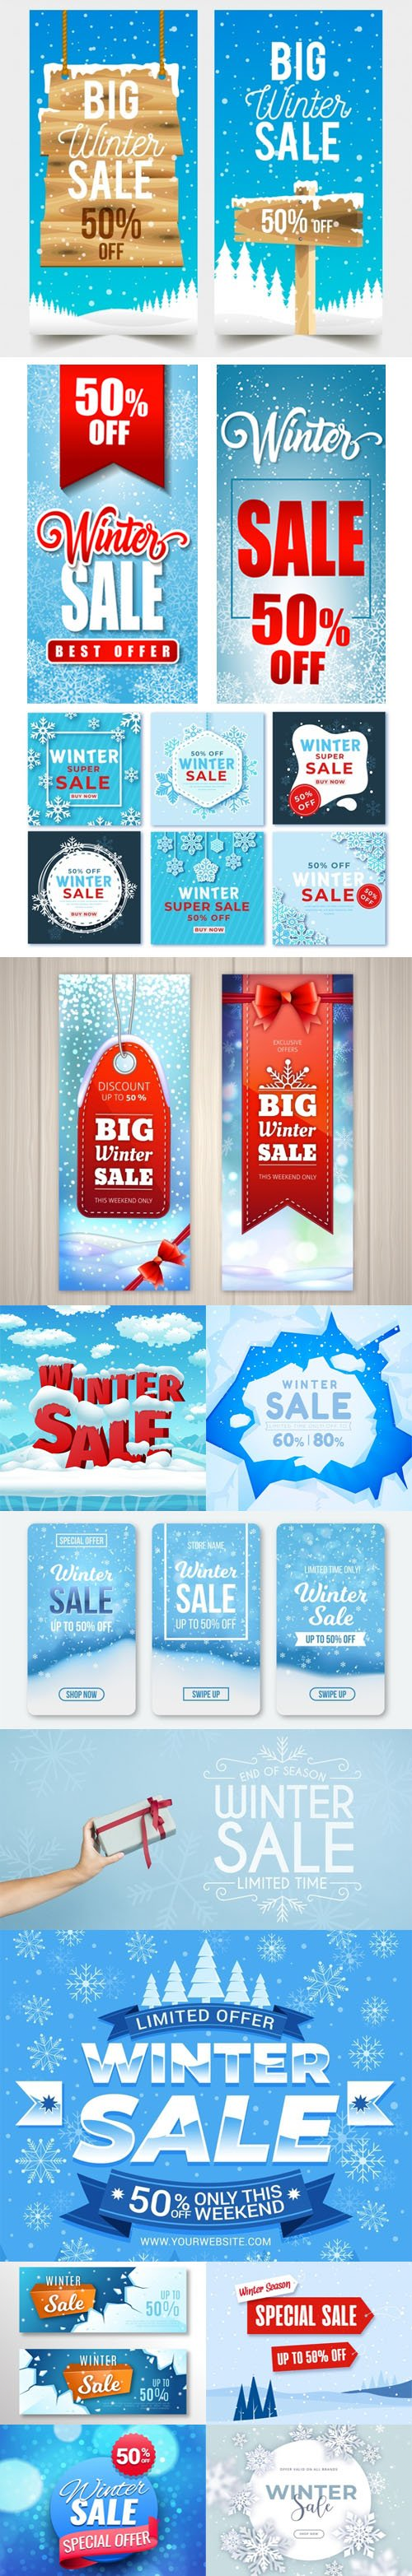 14 Winter Sales Banners & Backgrounds Collection in Vector